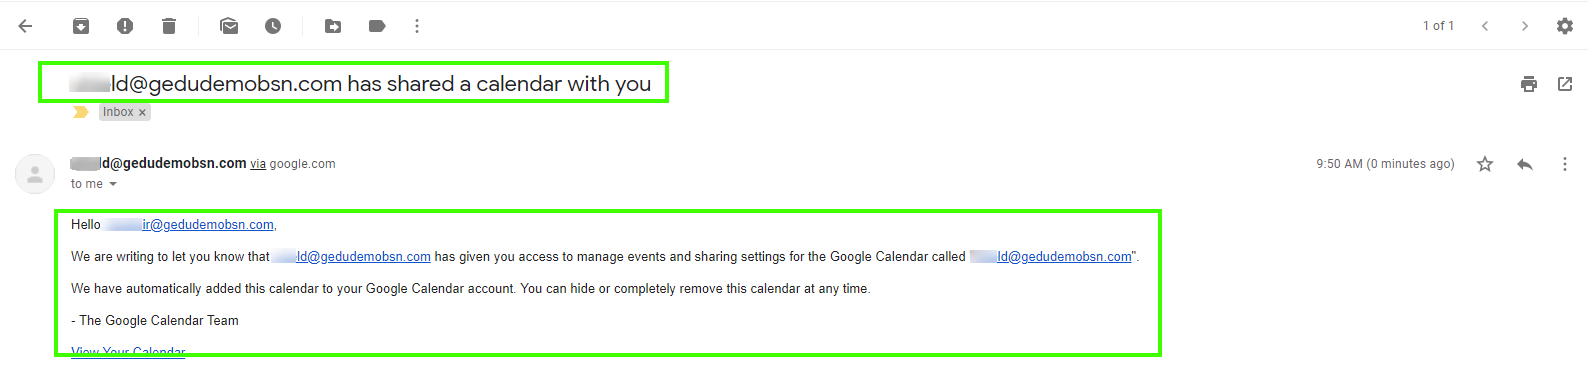 GAT+ Google Calendar Audit: Add additional Owners to Any Existing Calendar 2